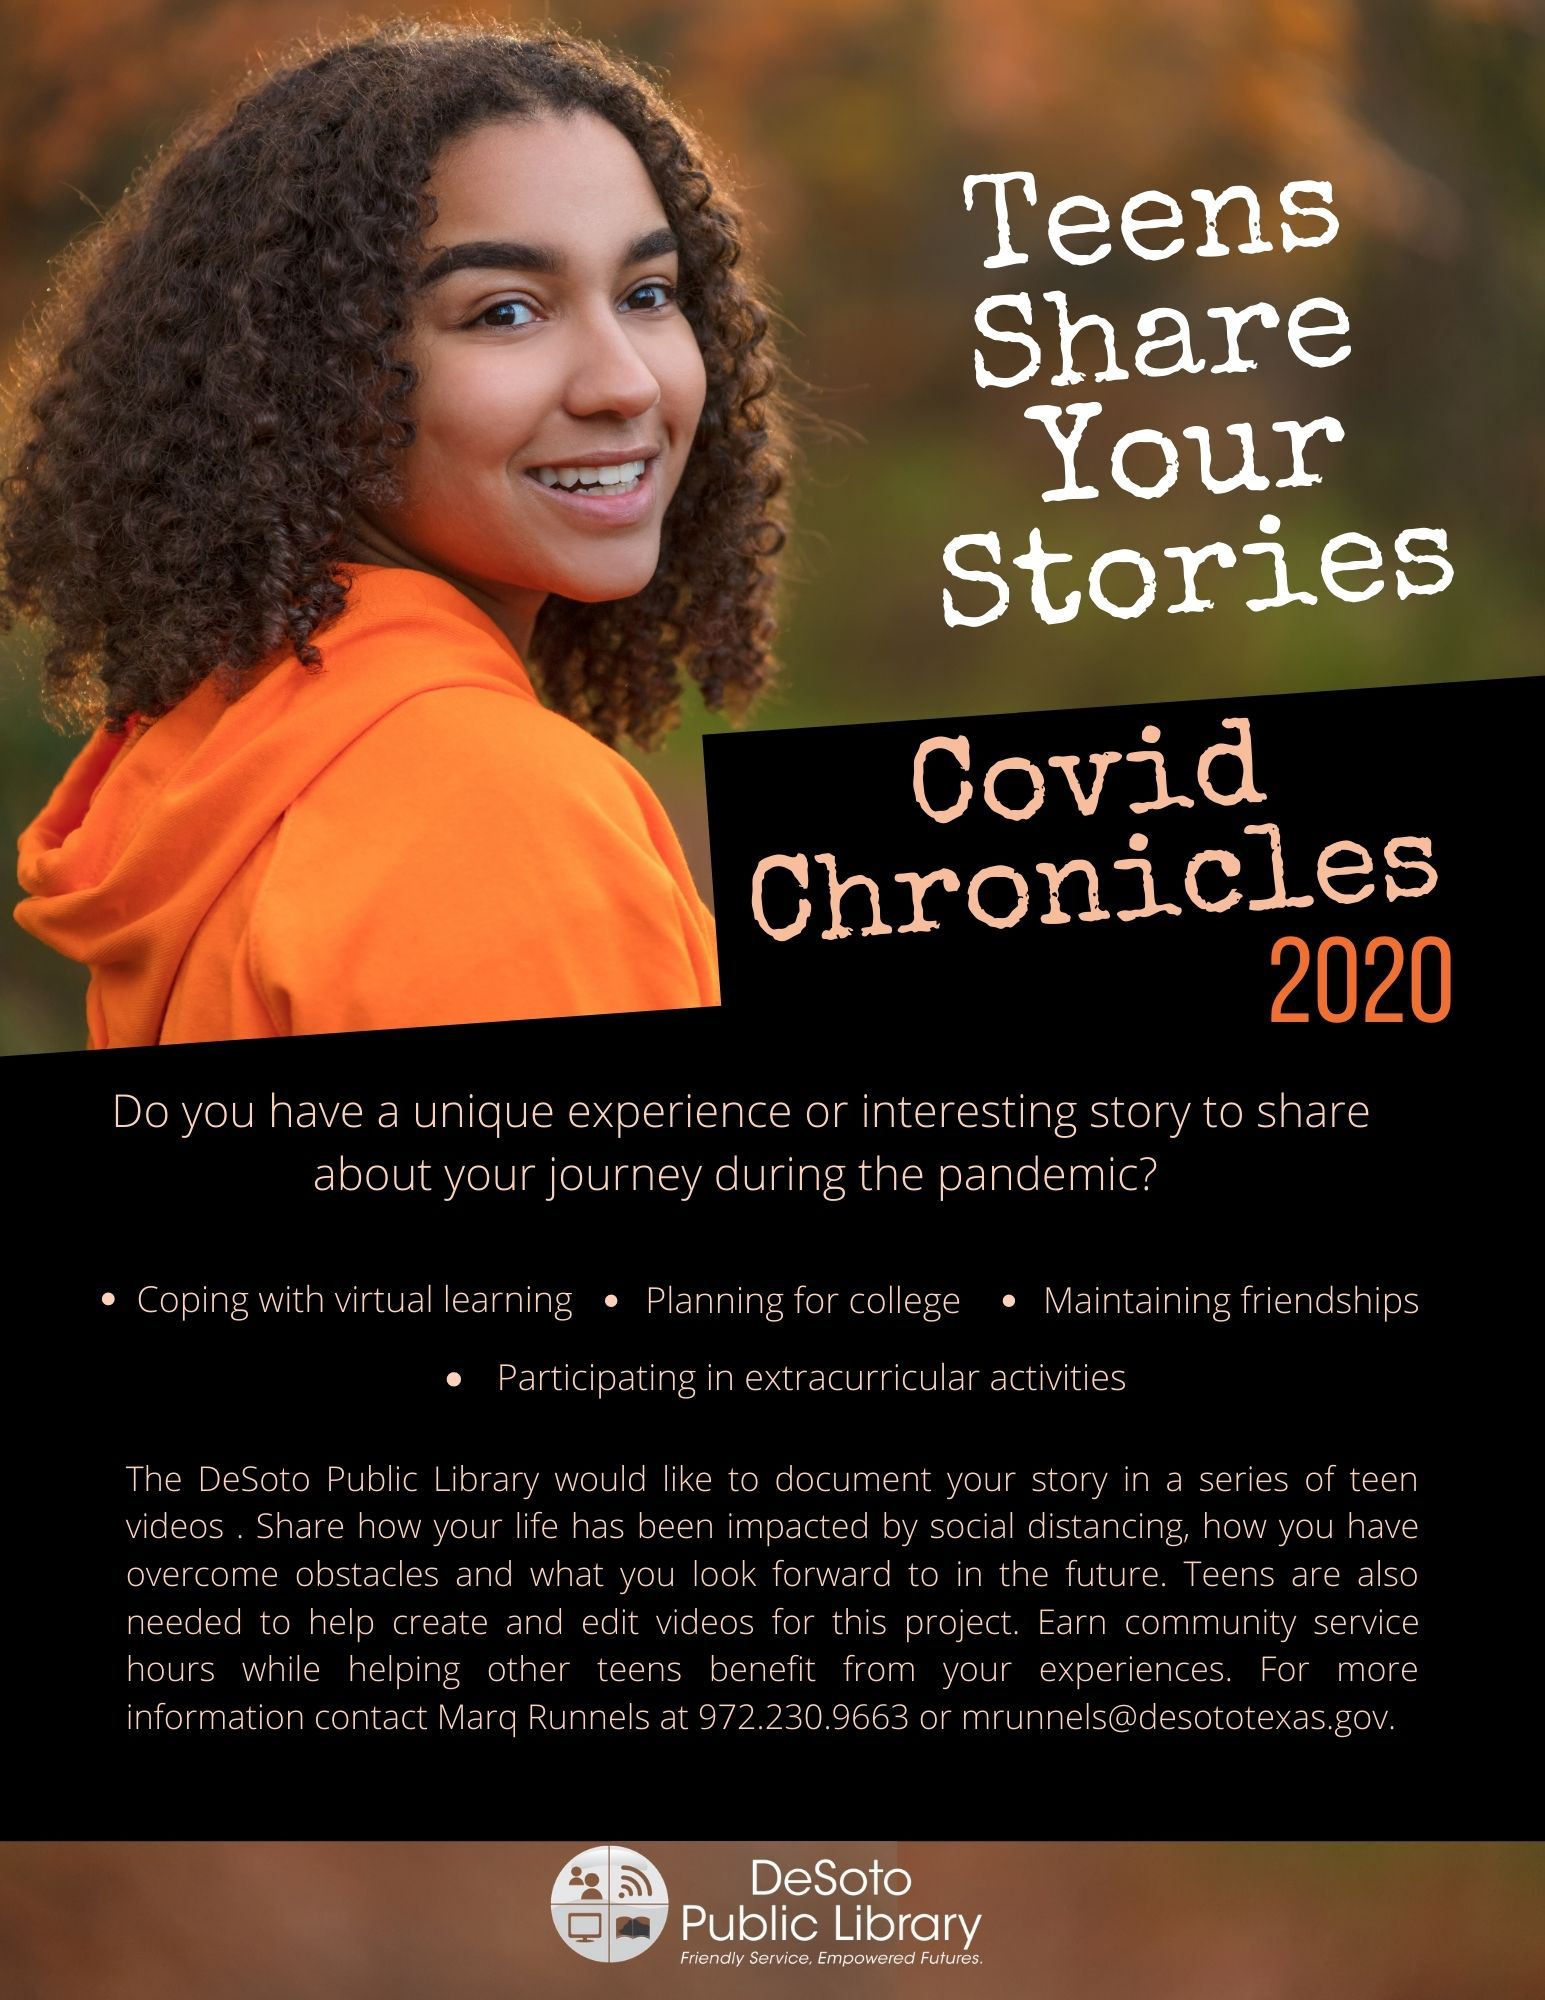 Teens Share Your Stories - COVID Chronicles 2020 image